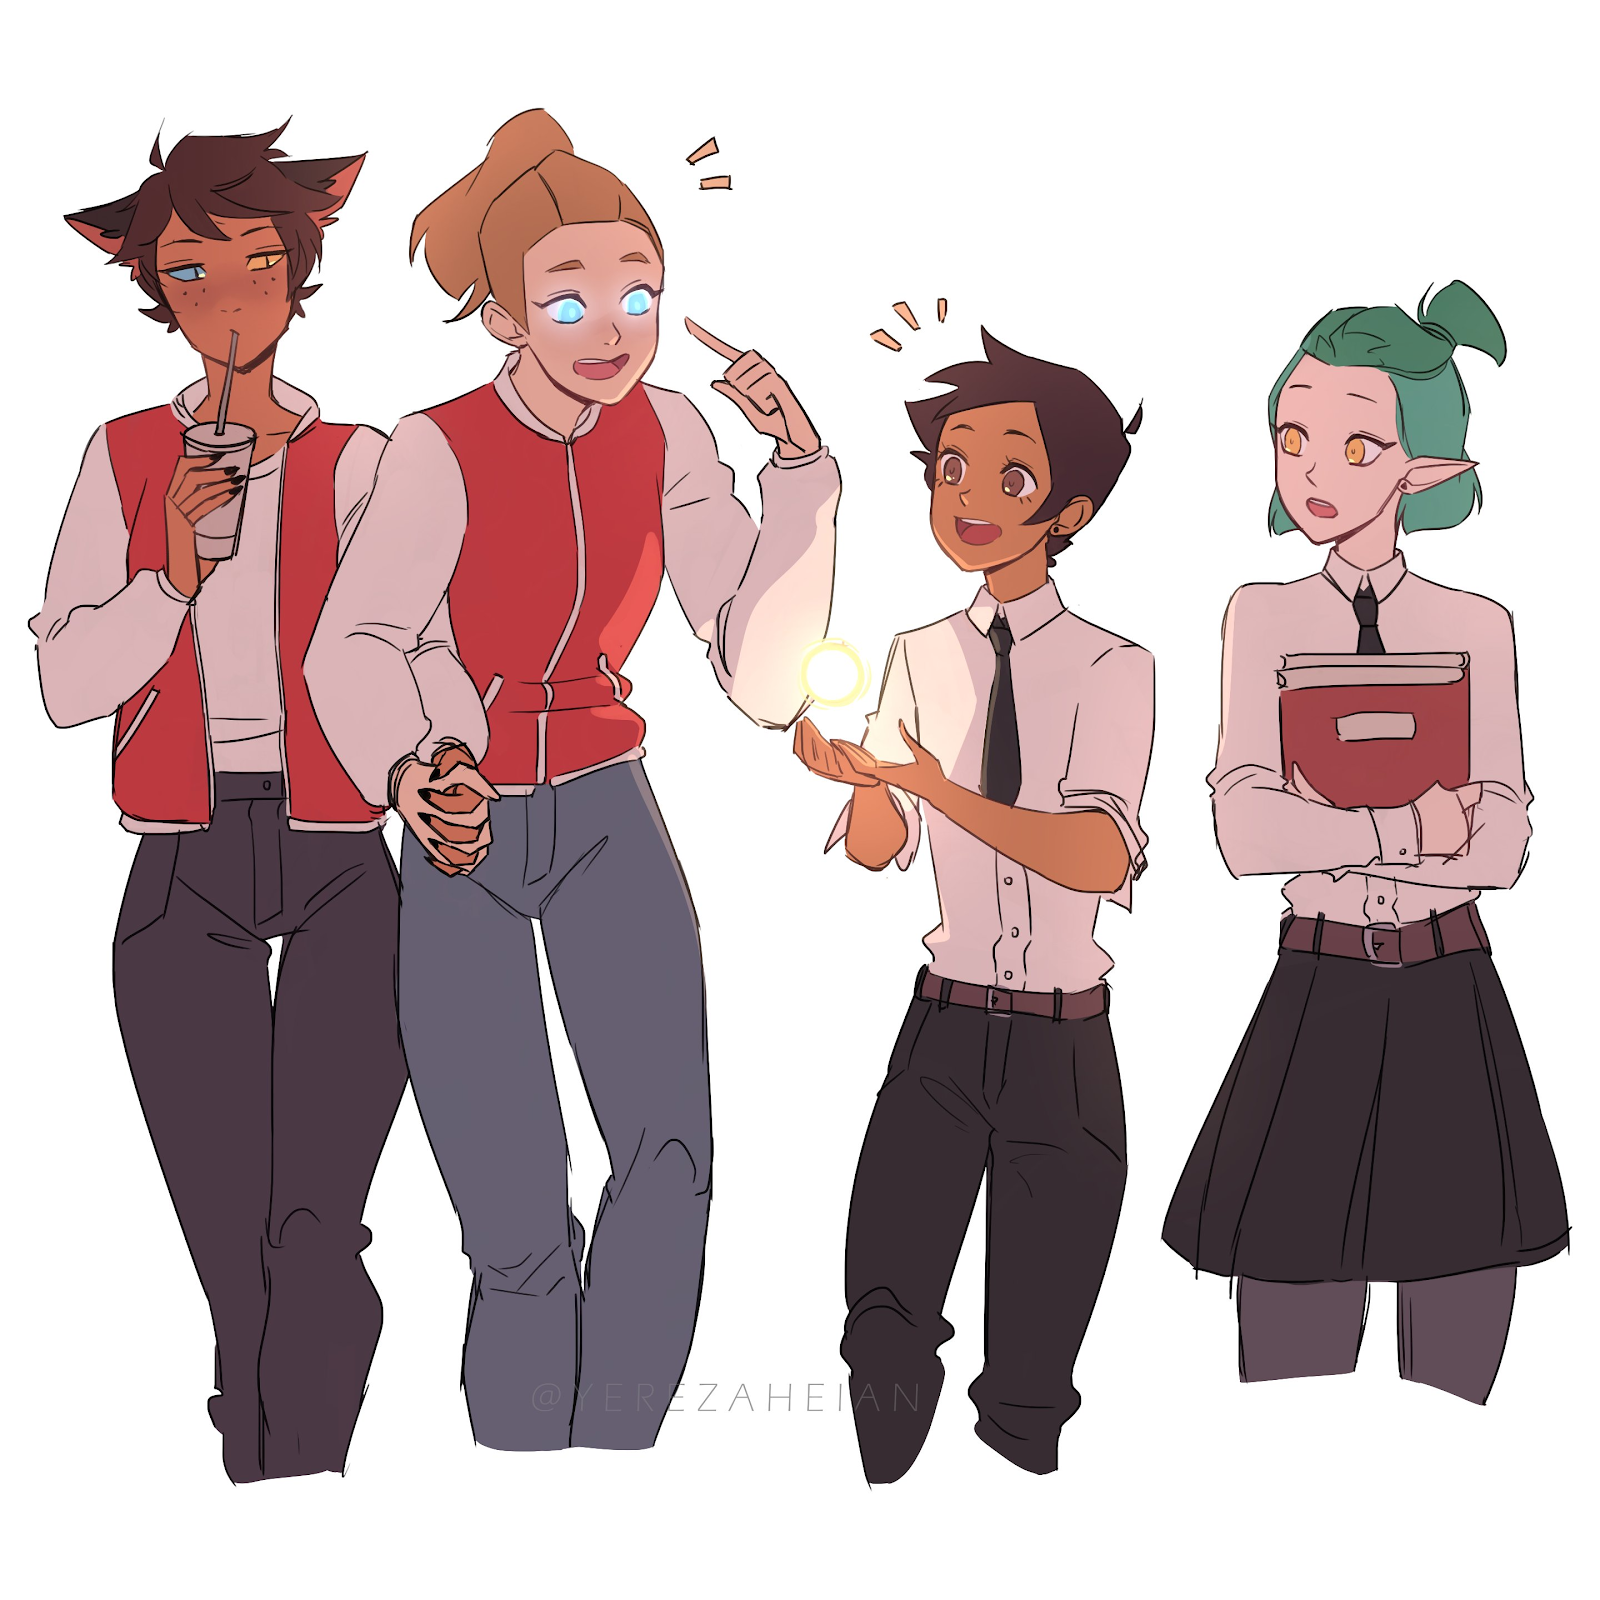 Fanart of Catra & Adora (She-Ra), and Luz & Amity (The Owl House). The four characters are dressed as regular teens in school clothes, talking to one another animatedly.